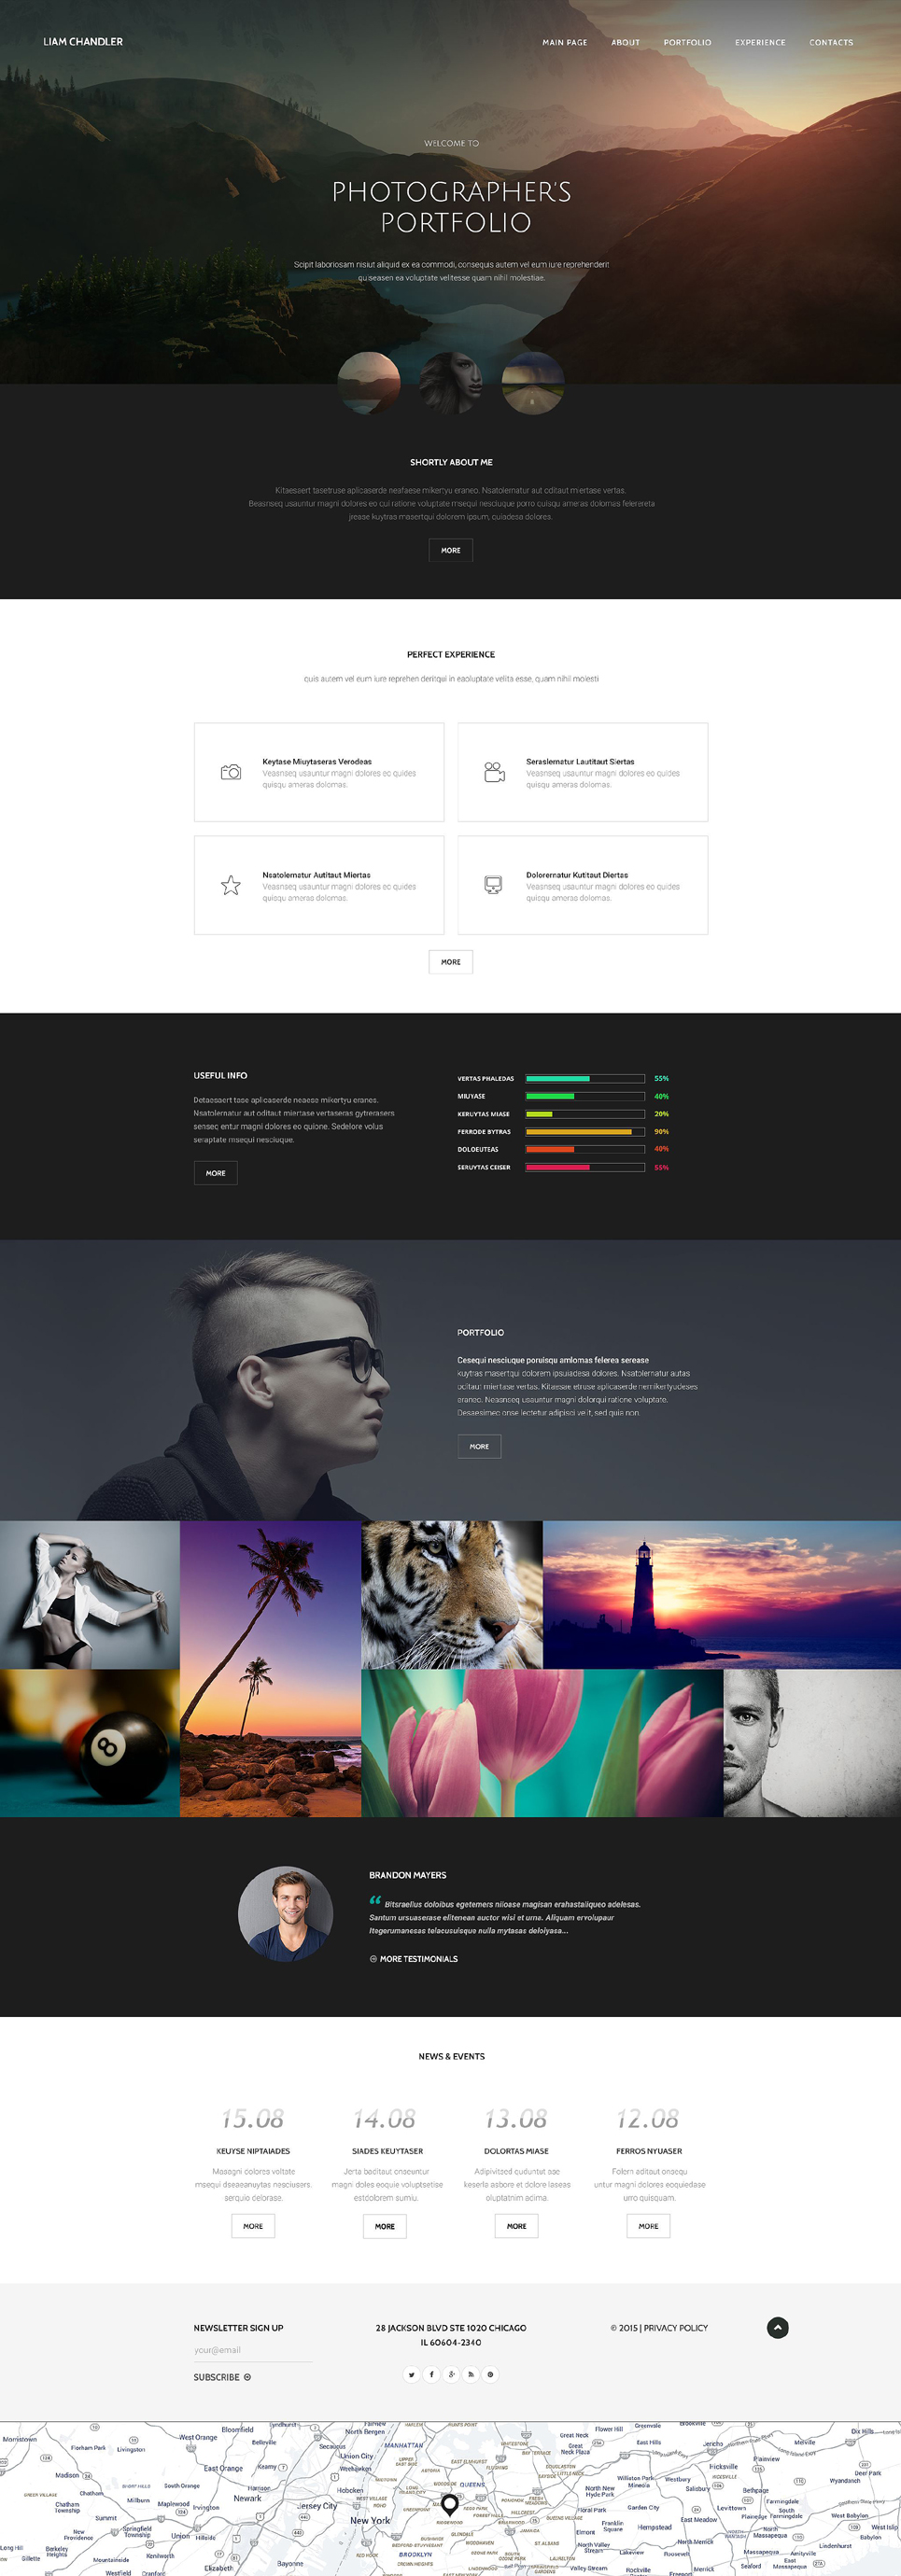 Photographer Portfolio template illustration image